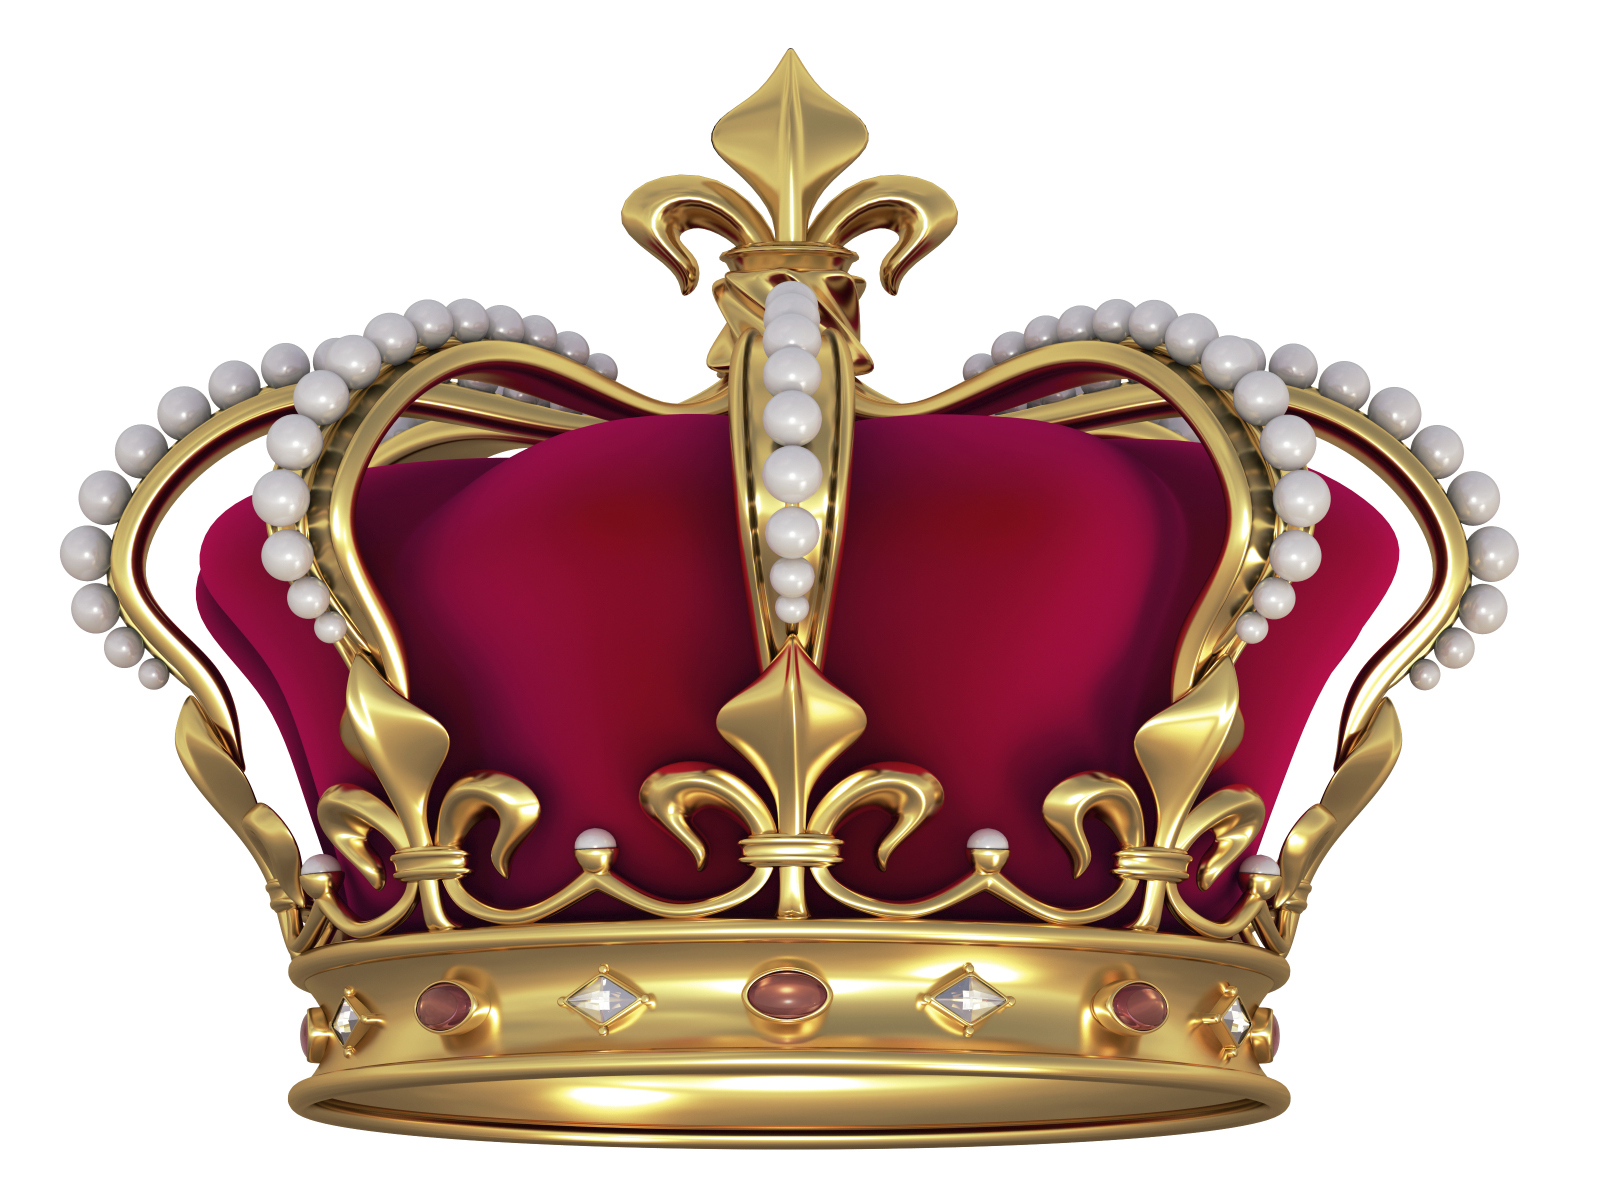 King Queen Crowns